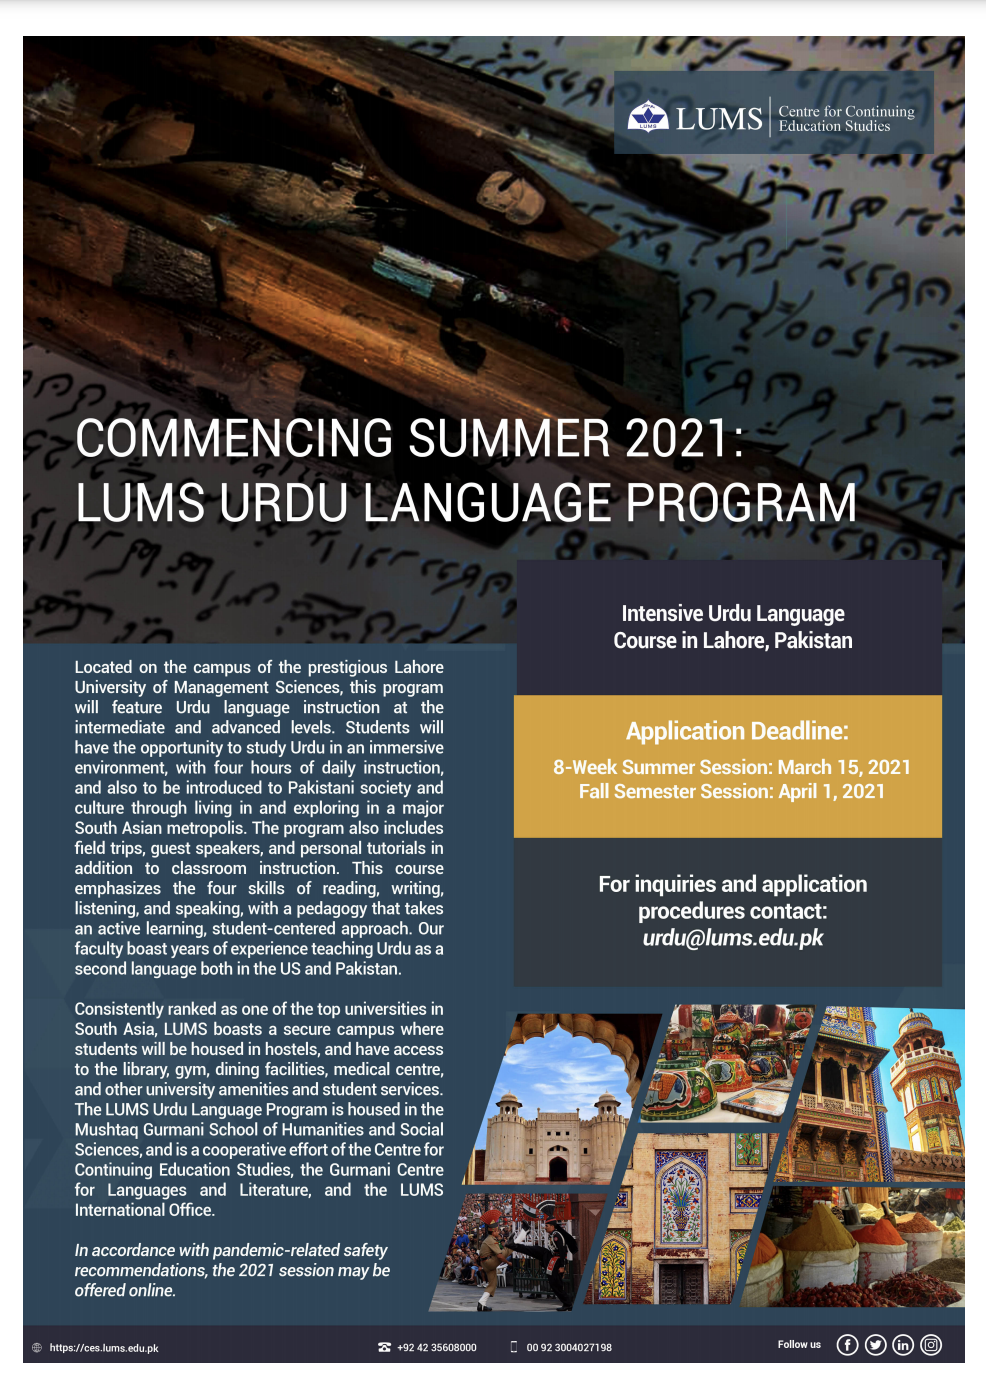 Flyer explaing LUMS Urdu Language Program opportunity. Email urdu@lums.edu.pk for more information on the program